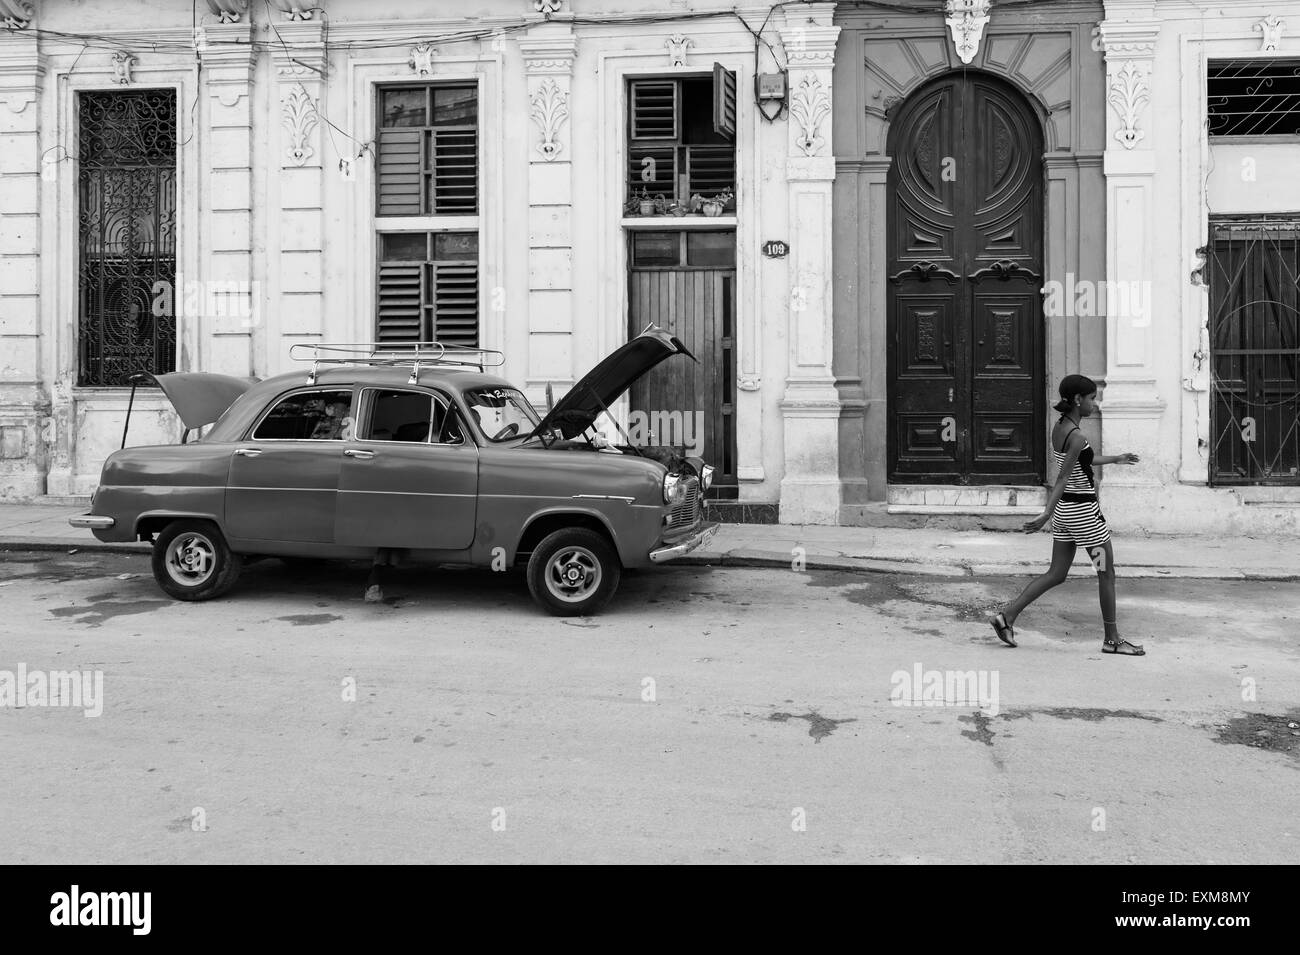 A Cuban classic car parked undergoing repairs in a central Havana street with a Cuban girl walking by. Cuba. - Stock Image